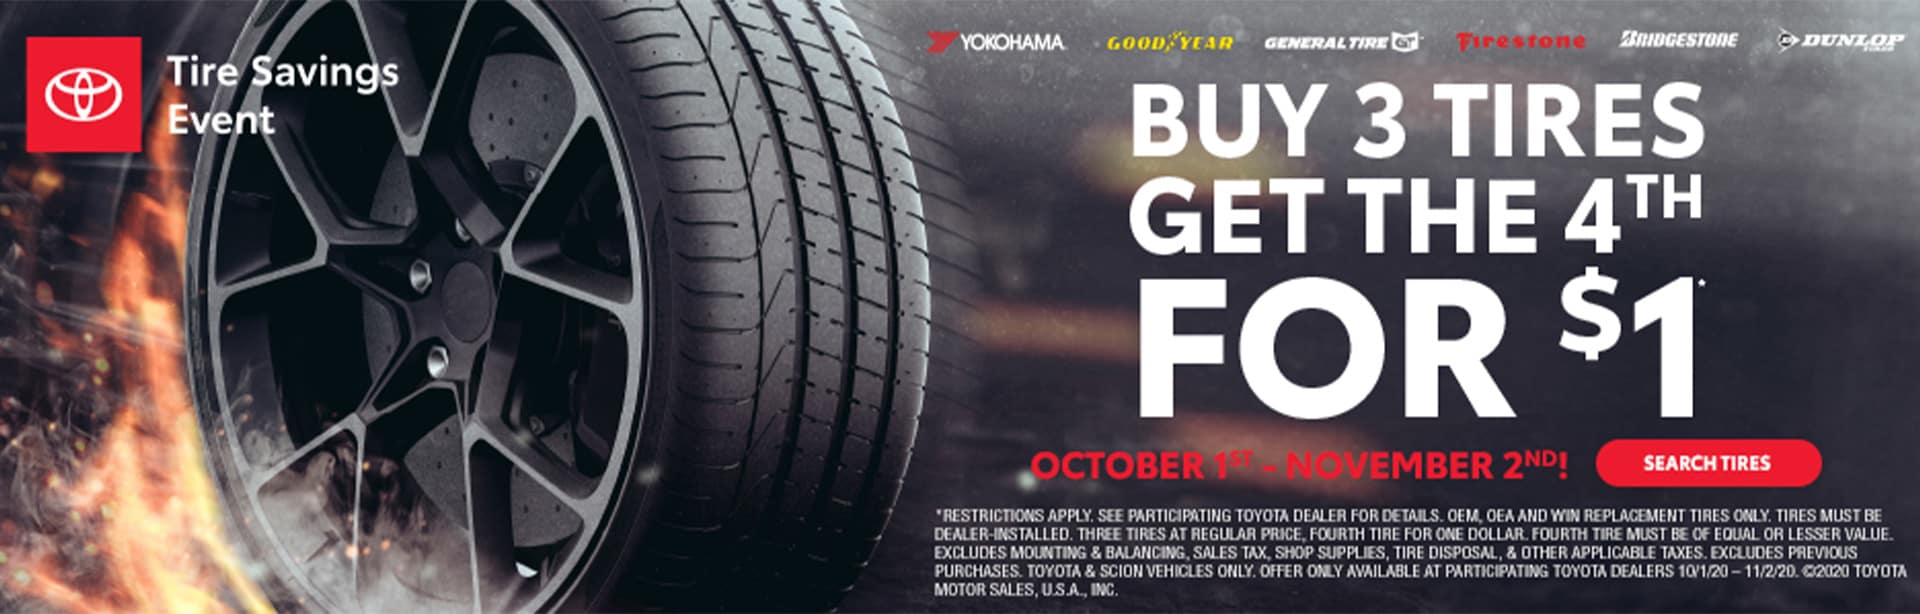 Buy 3 Tires, Get the 4th for $1 at Bev Smith Toyota!